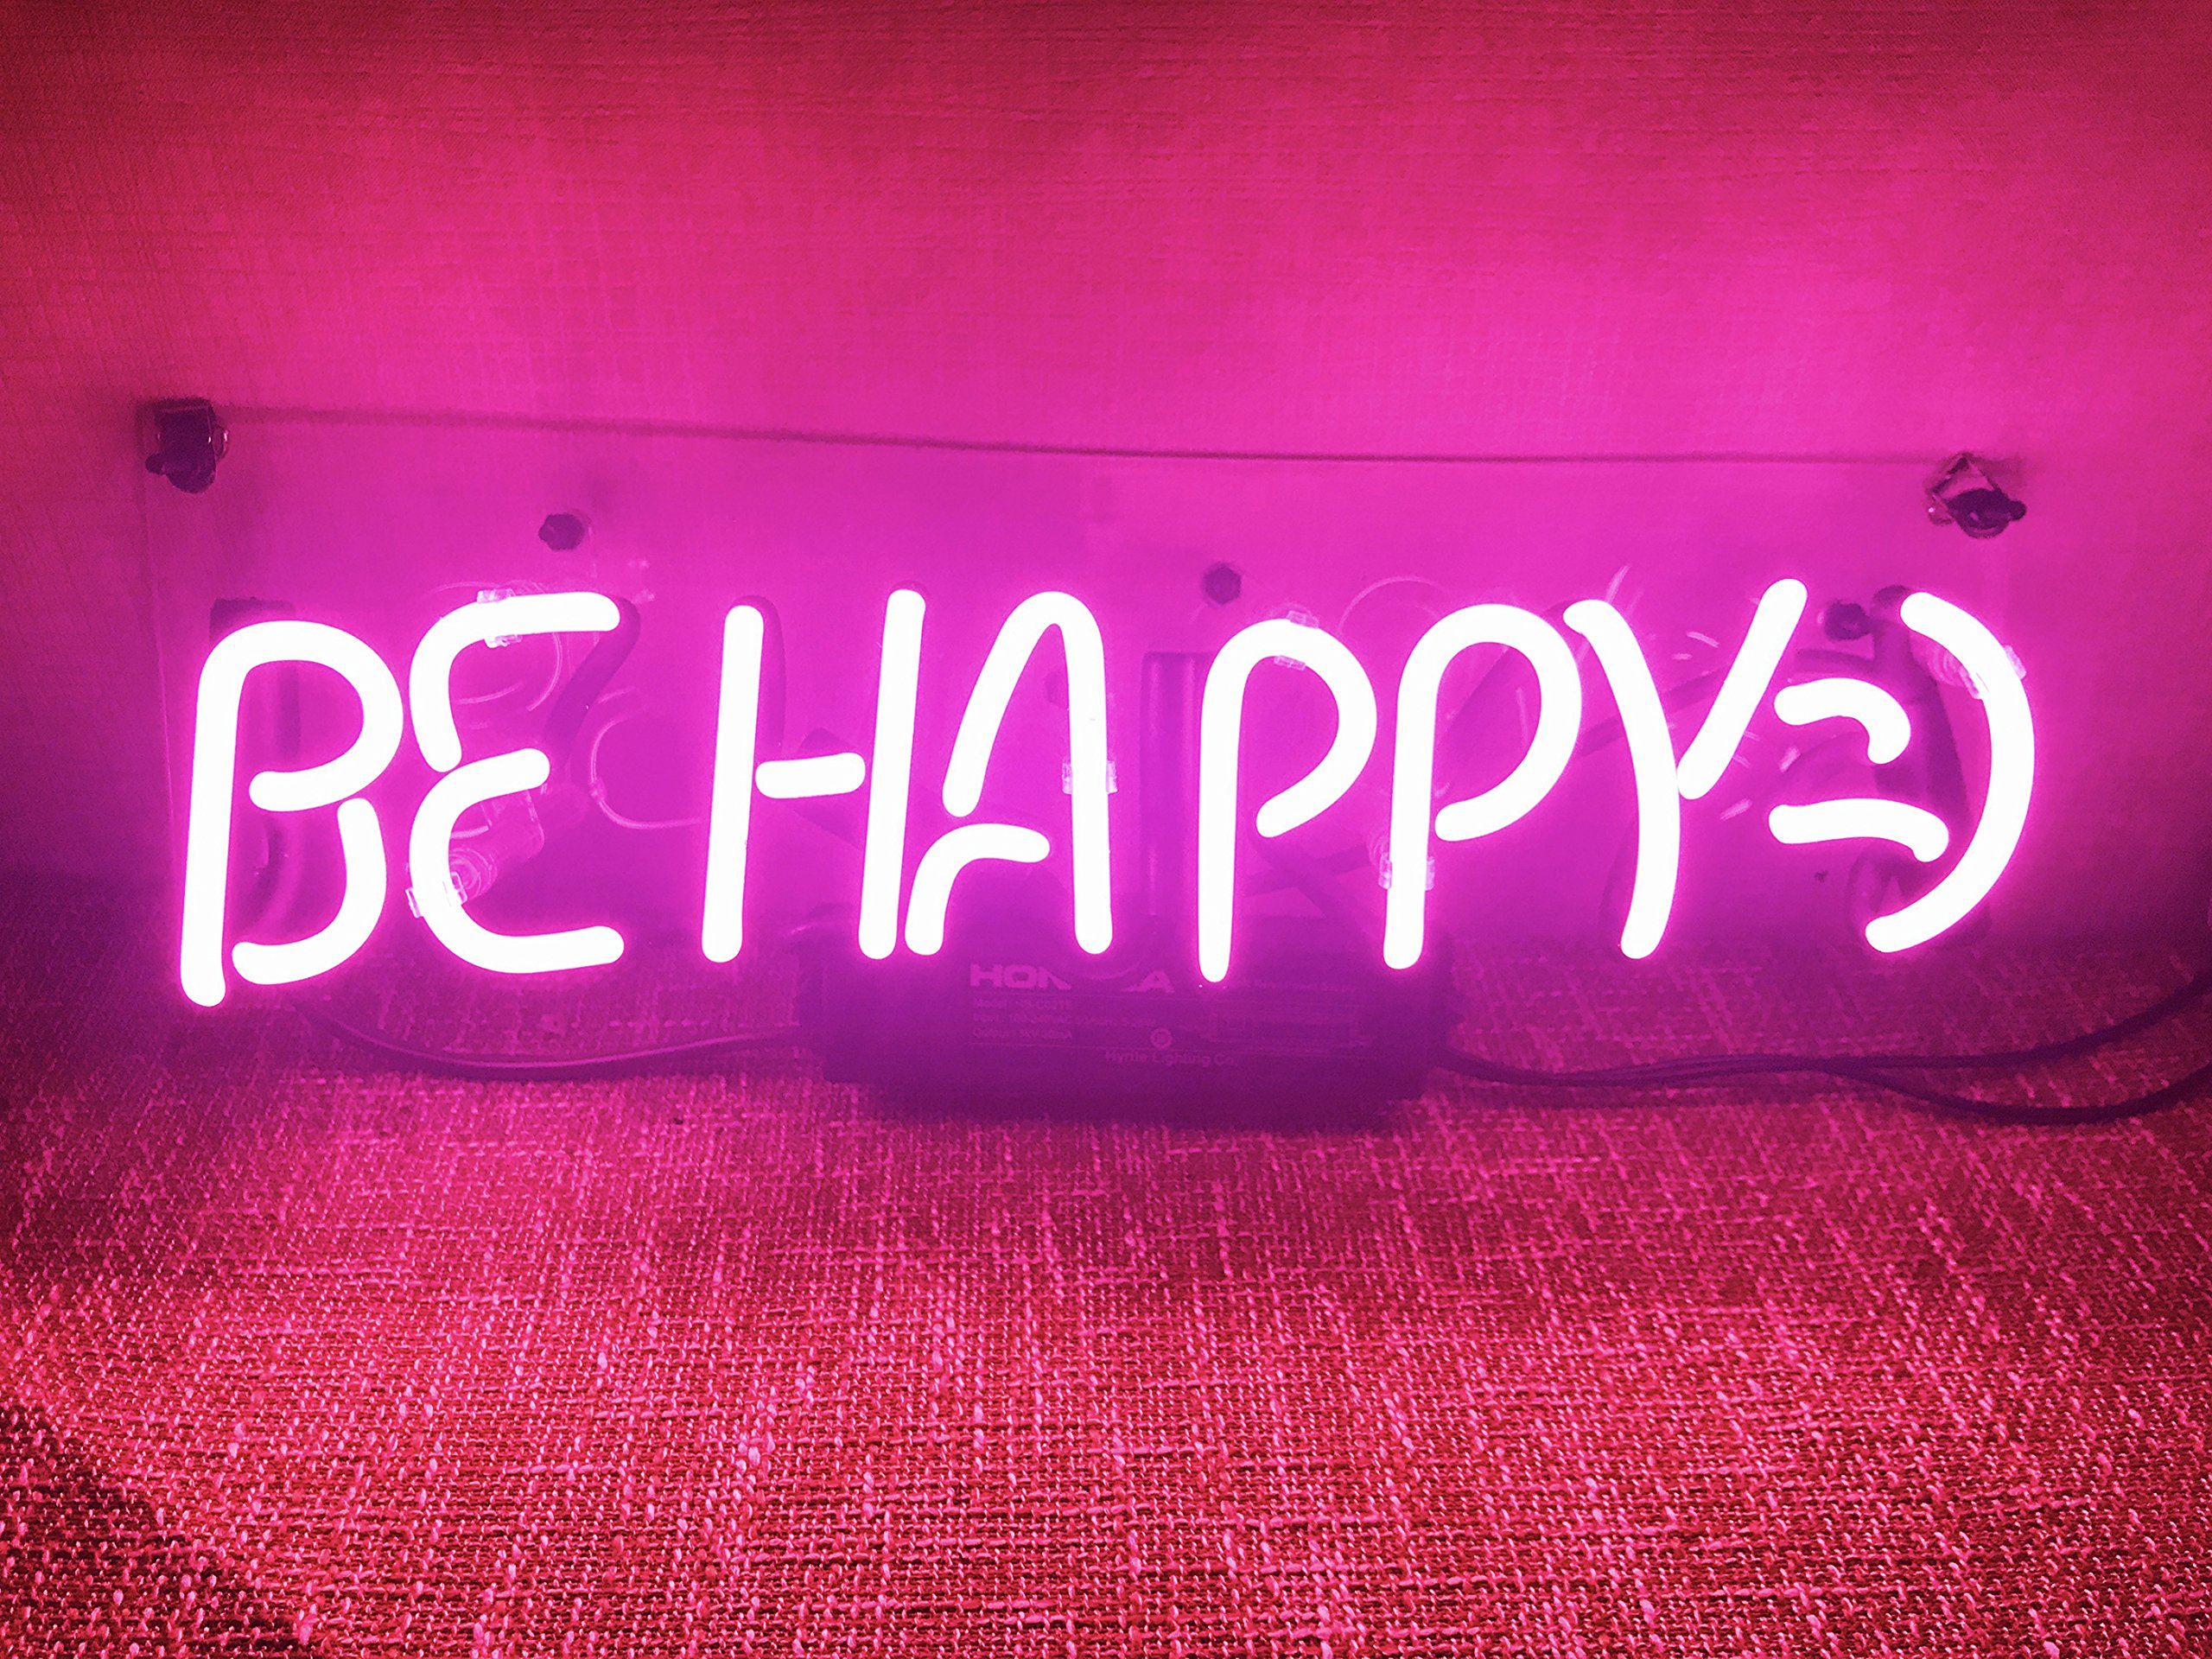 Funny Wall Sign Decor Neon Lights Bedroom Beer Bar Home Room Decor Girls Lamp Night Light Decorative Custom Pink - Be Happy